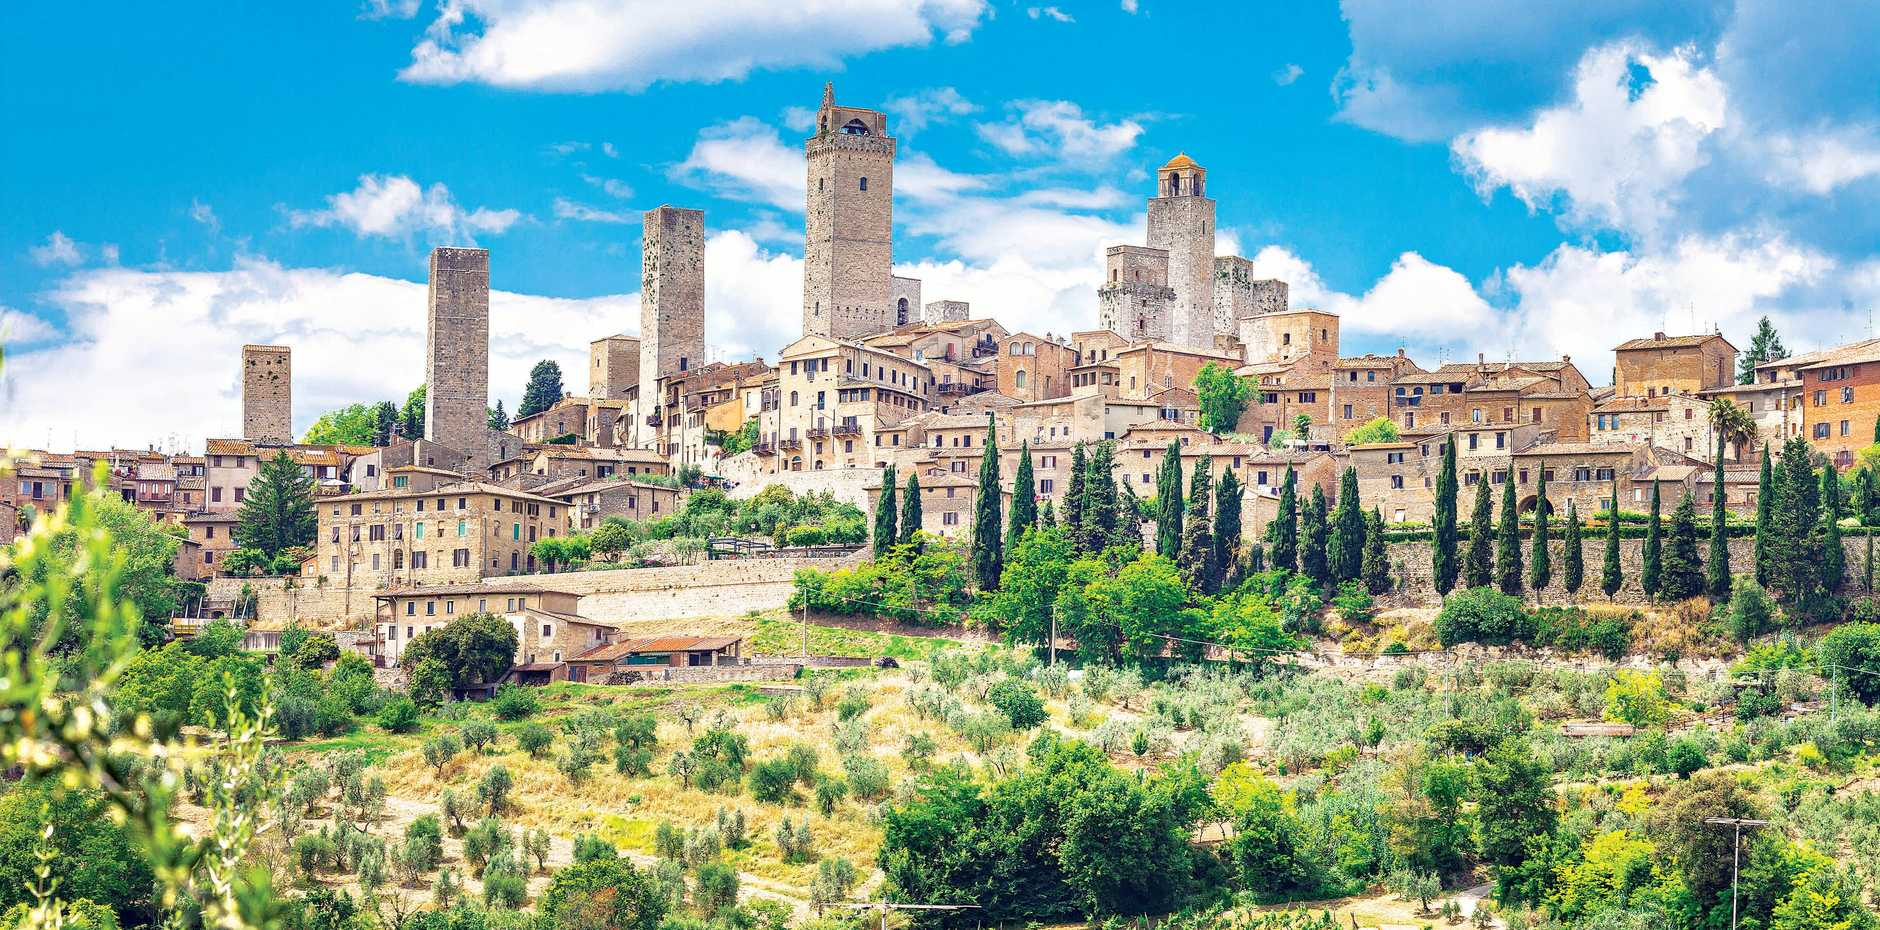 The olive groves and grapevines that flank the impressive medieval town of San Gimignano in Tuscany.